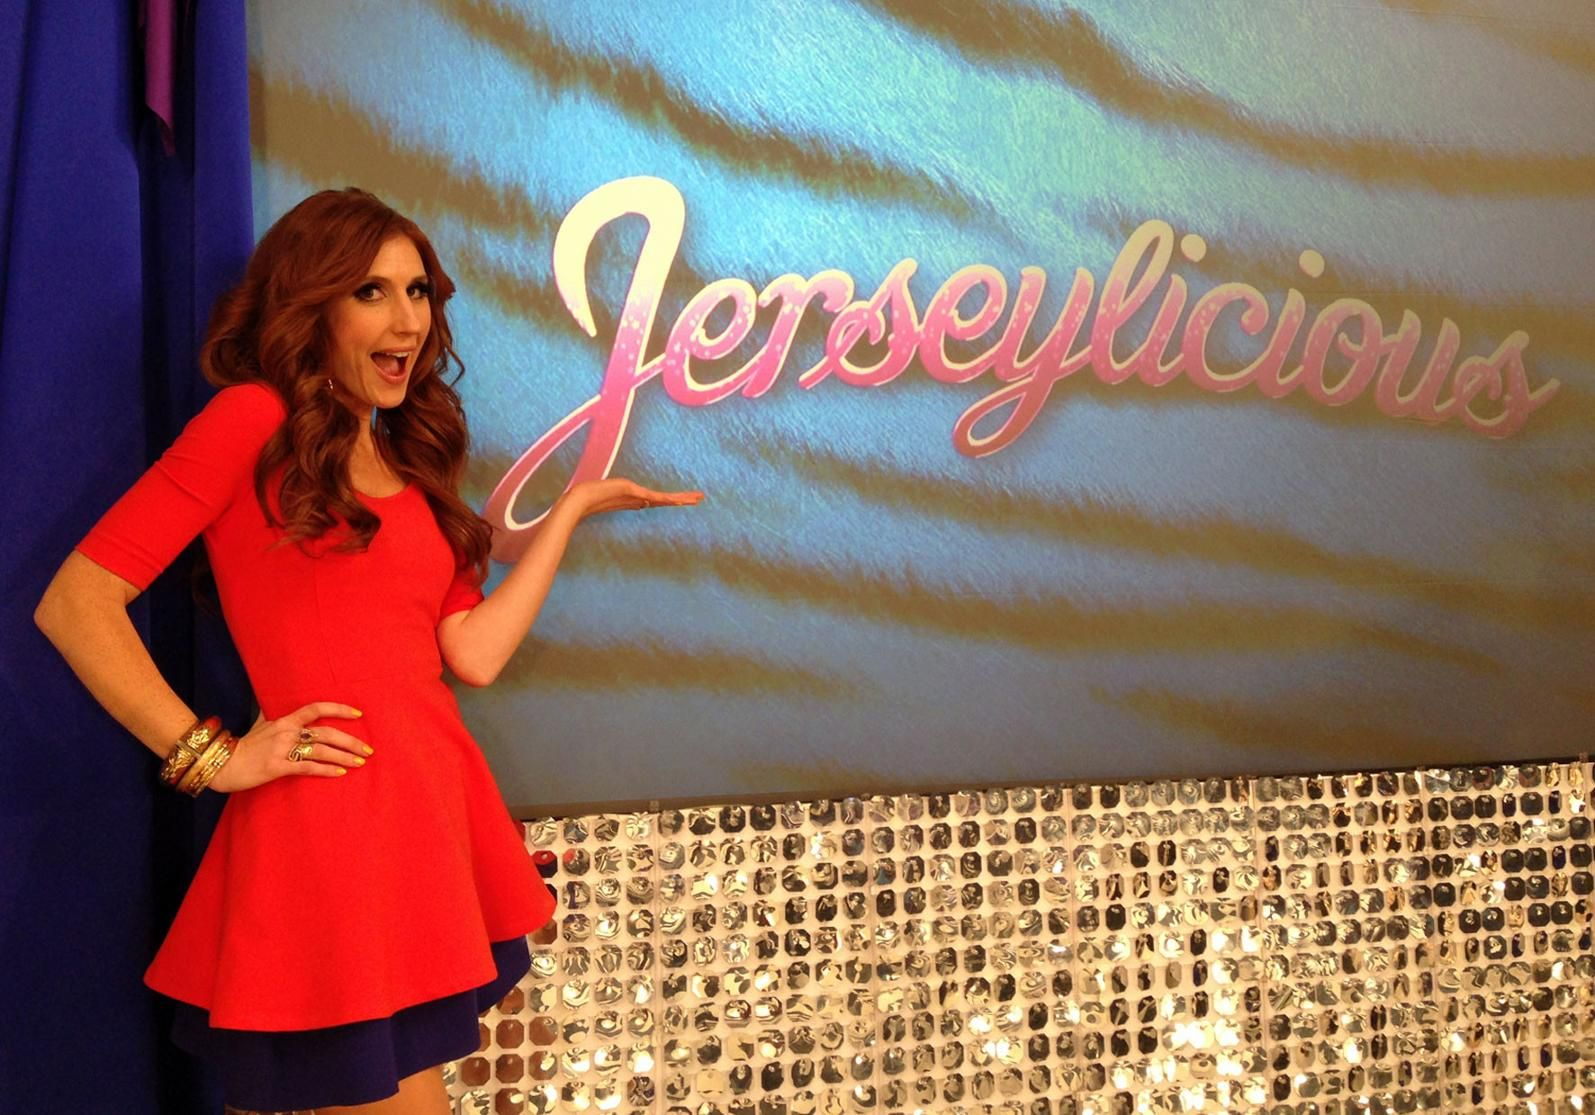 Host Jessi Cruickshank Gives a emJerseylicious/em Reunion Play-by-Play! - Style Network